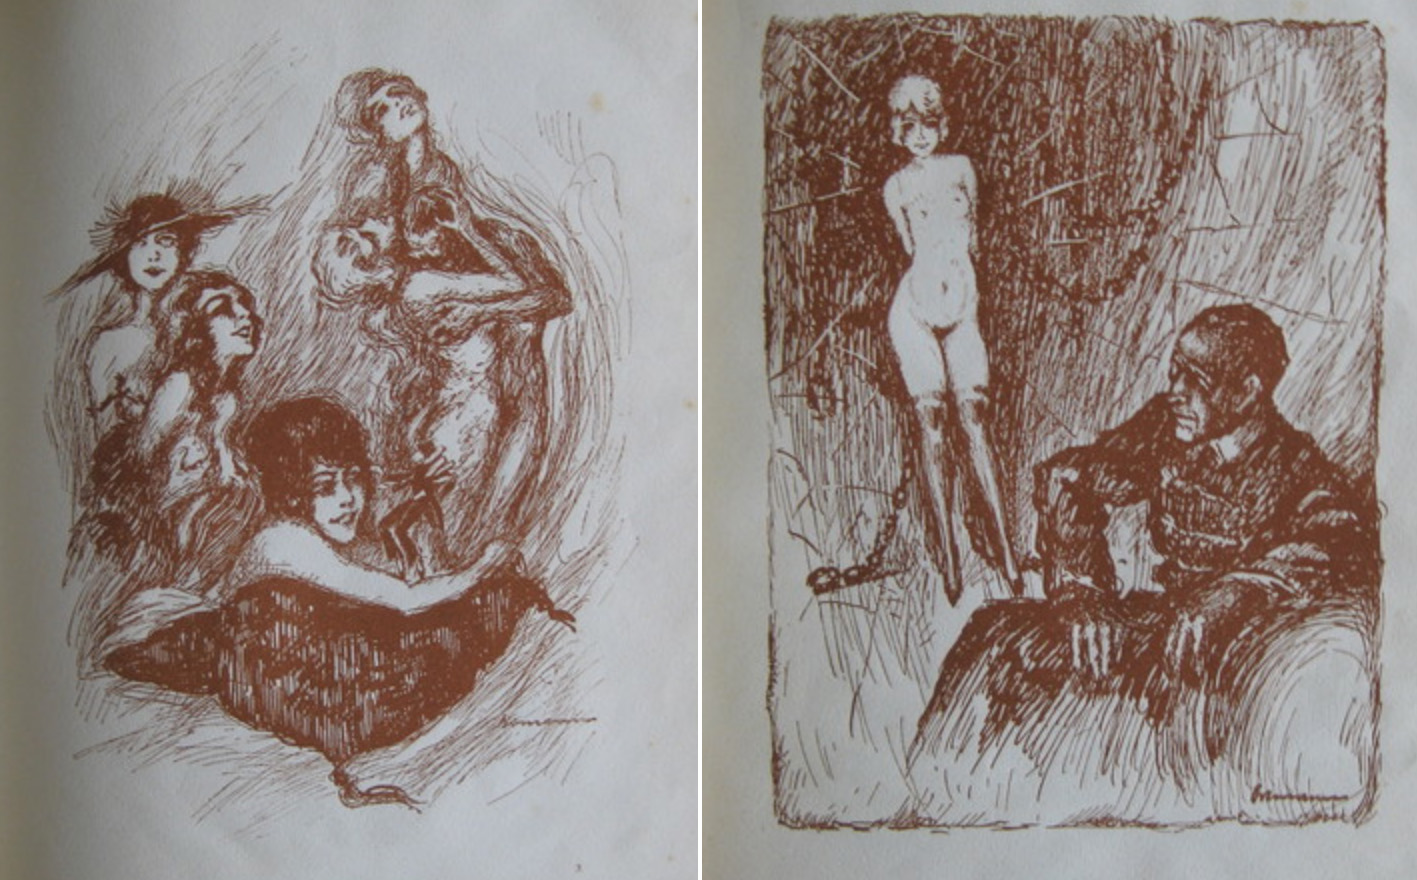 Illustrations by W. Ortmann for 'Das Brevier des Junggesellen' (1919)